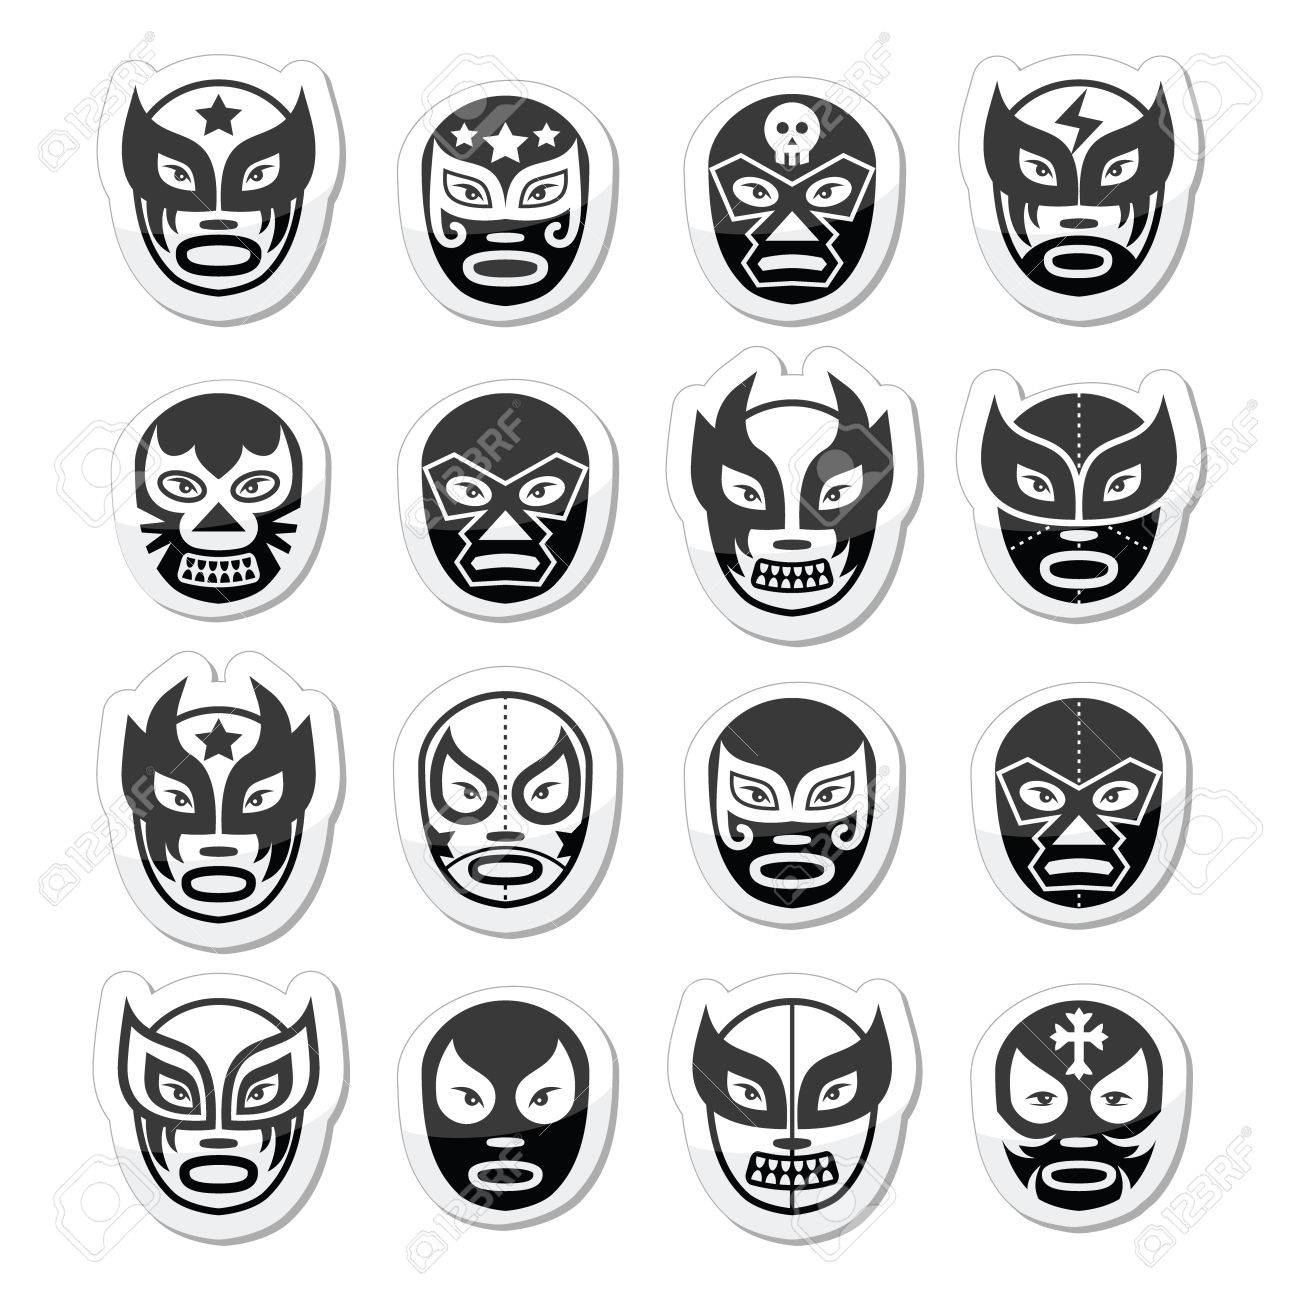 lucha libre luchador mexican wrestling black masks icons royalty